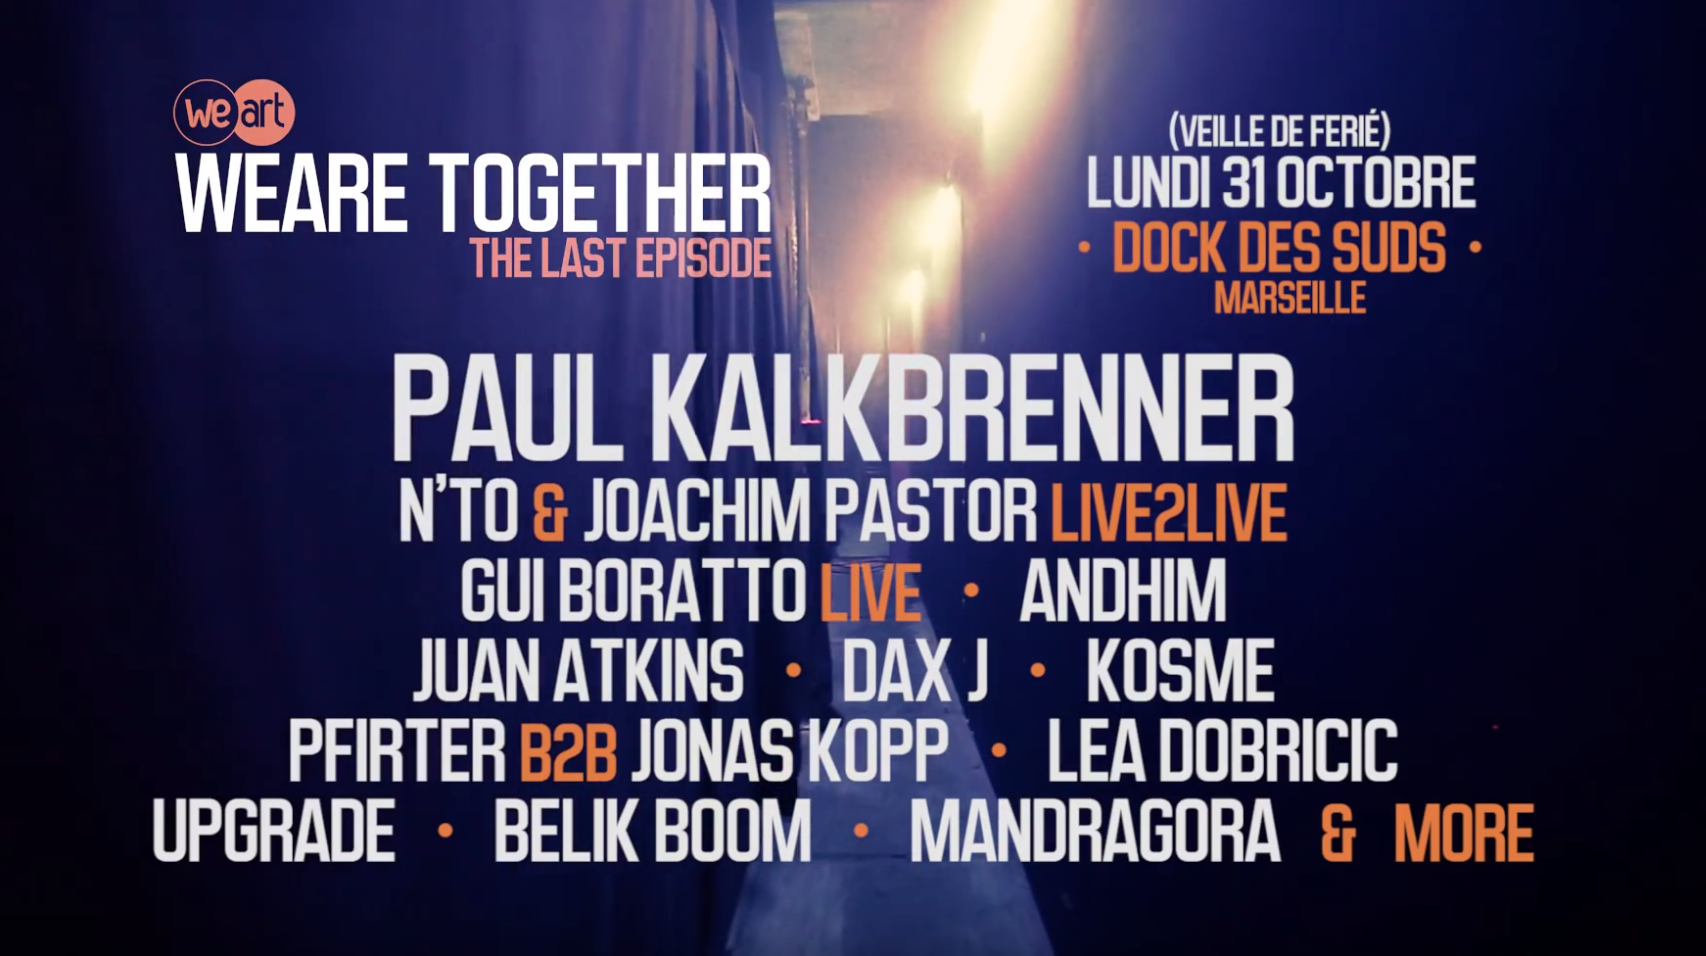 2 places à gagner pour WeAre Together! -